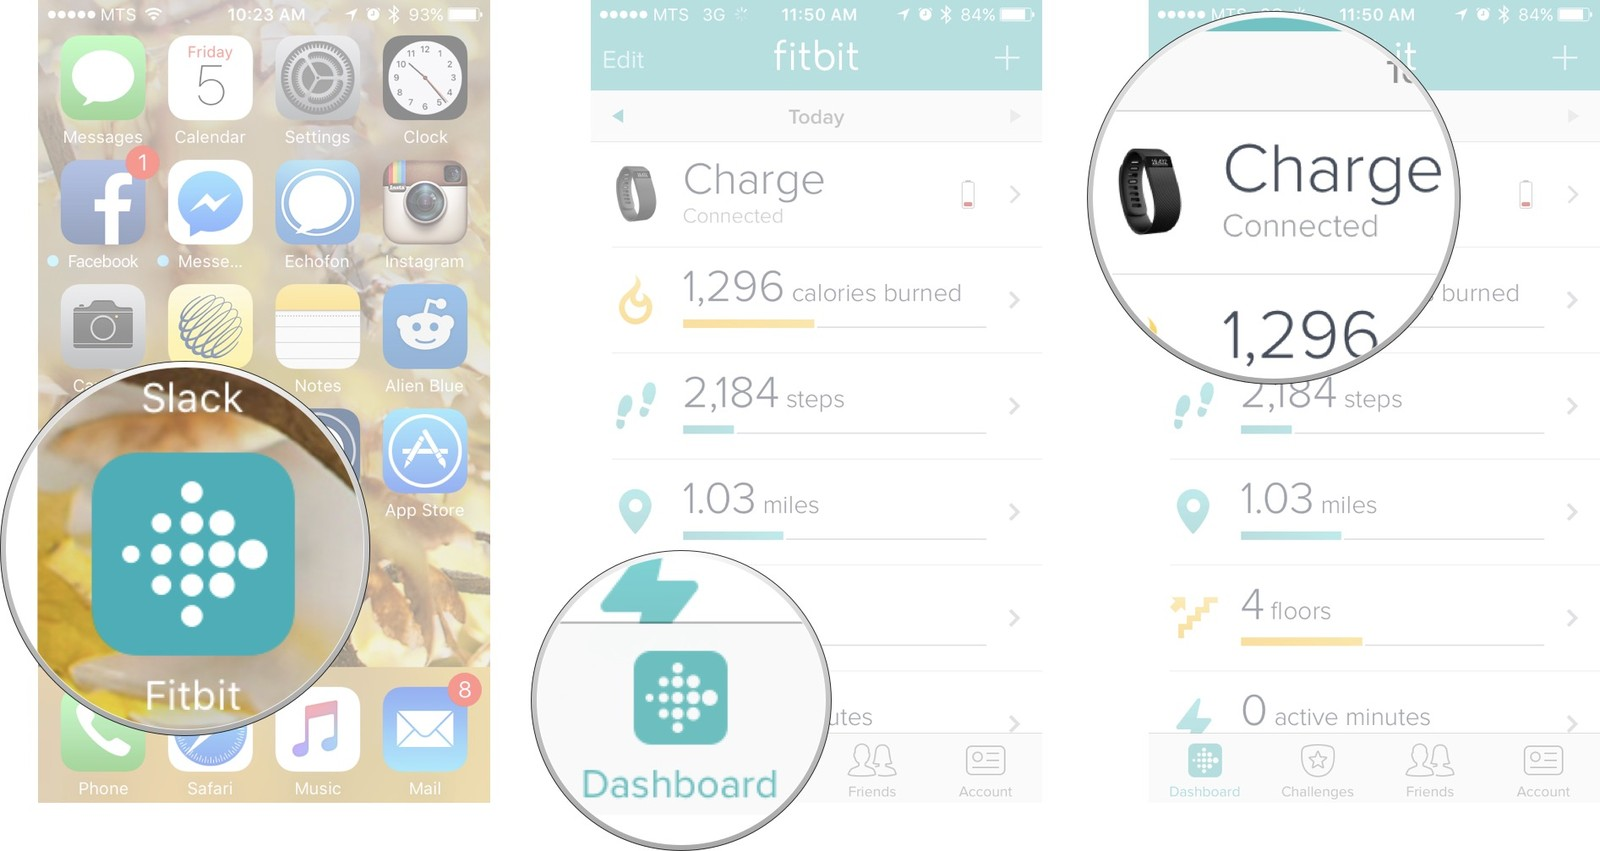 Launch Fitbit from your Home screen, tap on the dashboard tab, and then tap on the paired device you want to customize.